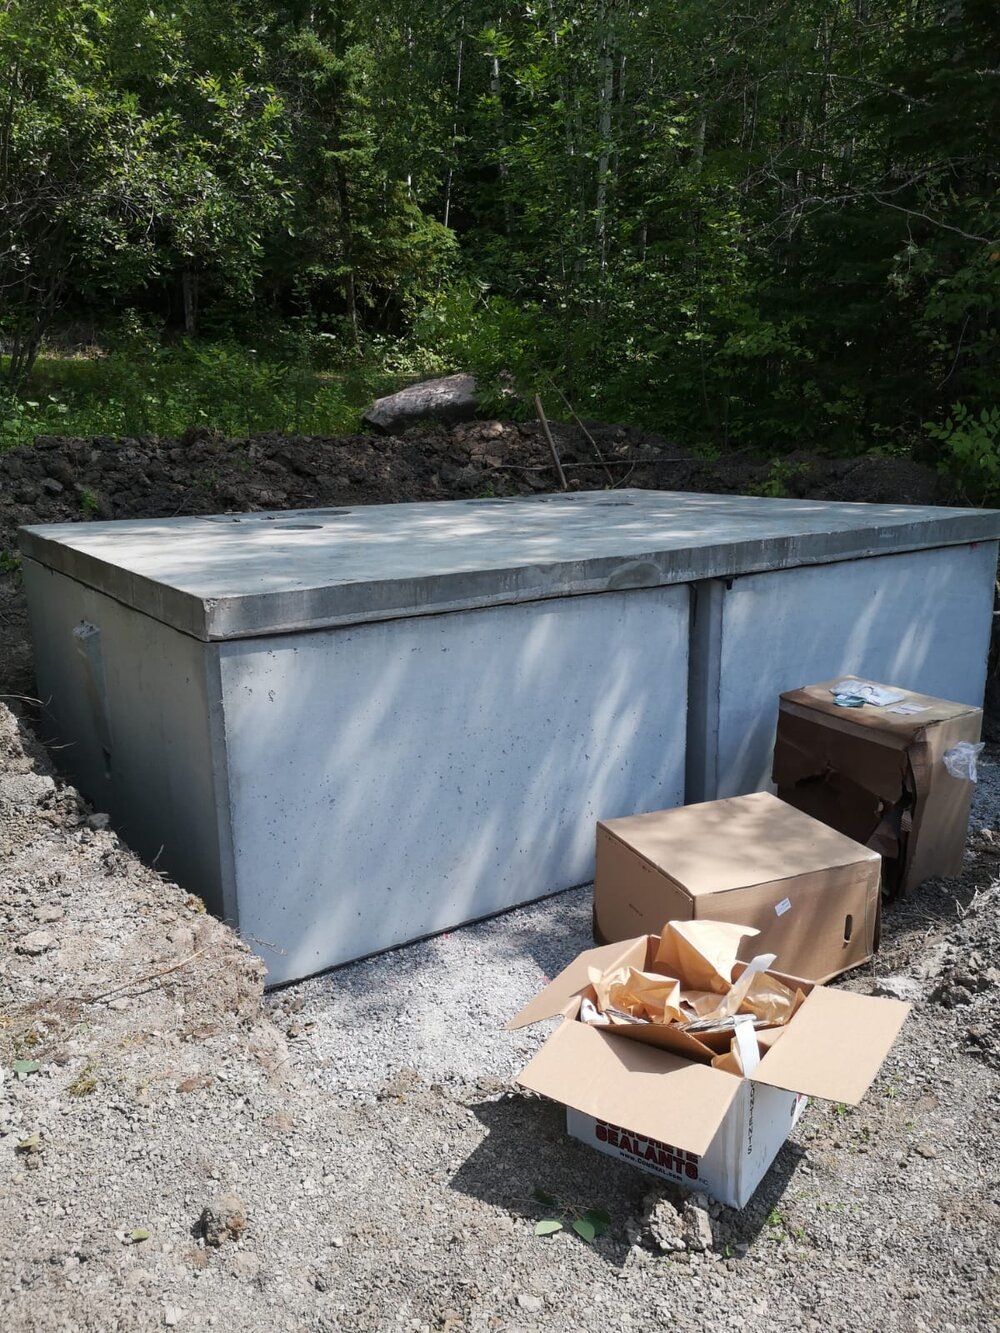 Golf Course outhouse holding tanks and base (Ontario)